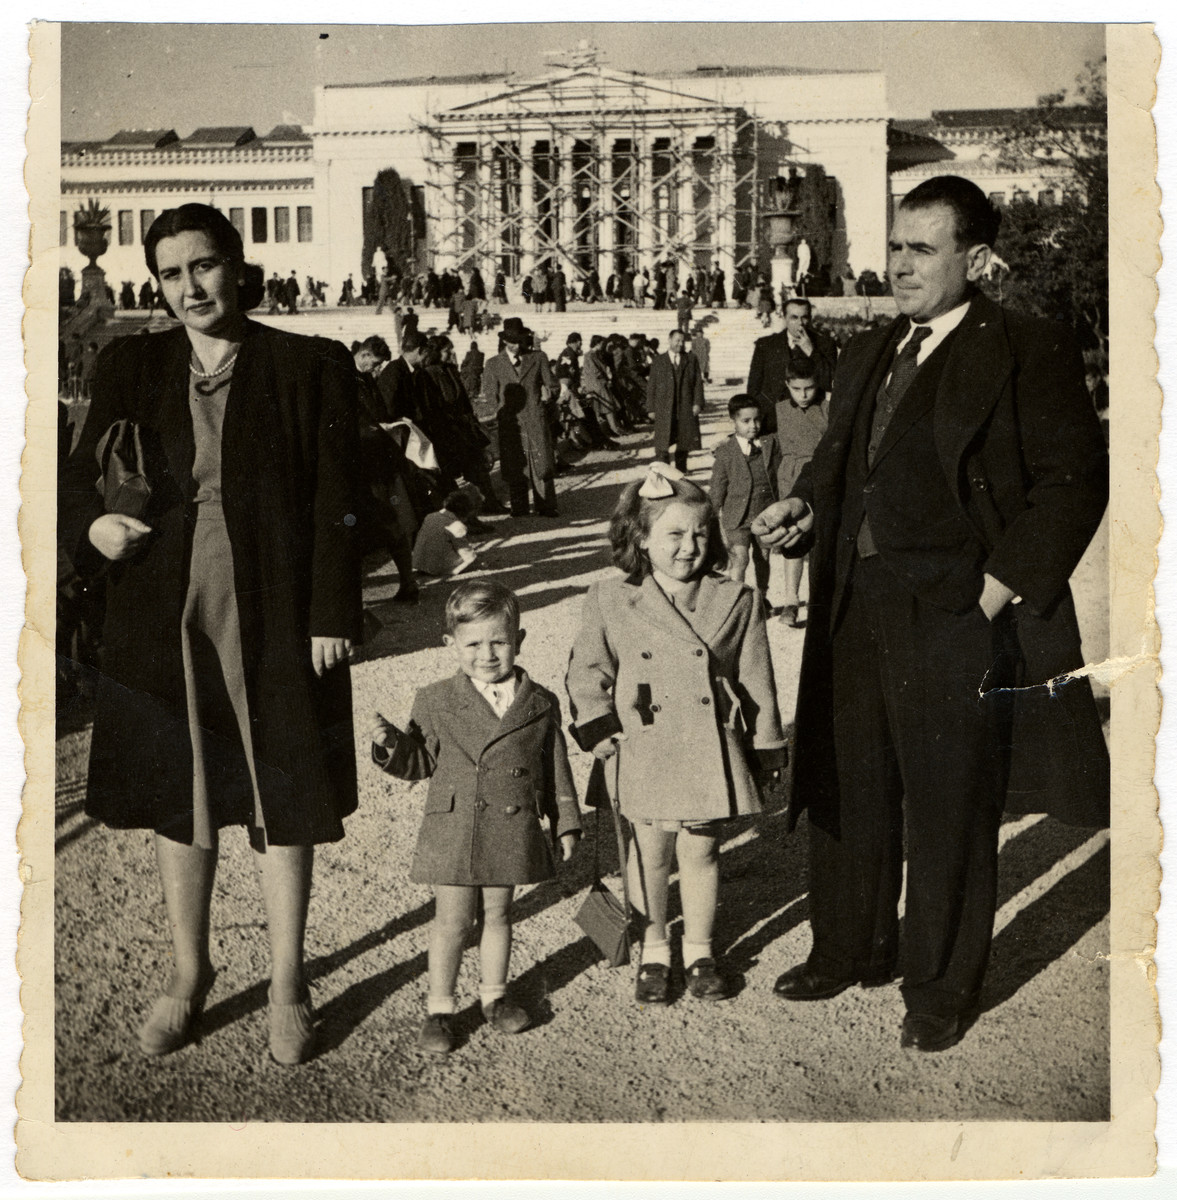 A Greek Jewish family after the war.  Pictured are Claire and Jacob Elhai, with their children Elvira and Victor.